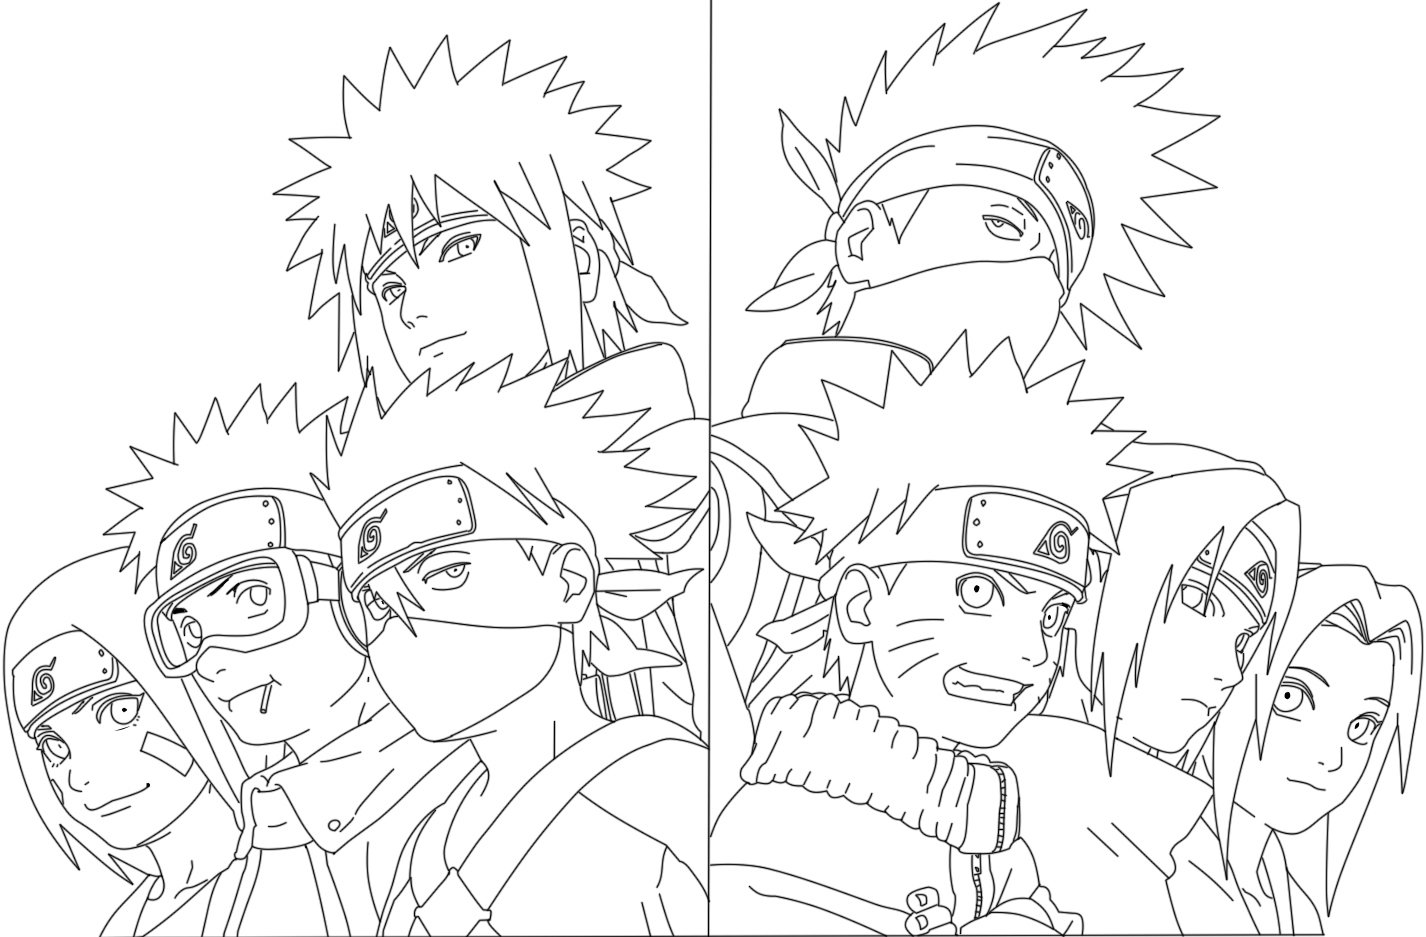 Naruto Outline Drawing At Getdrawings